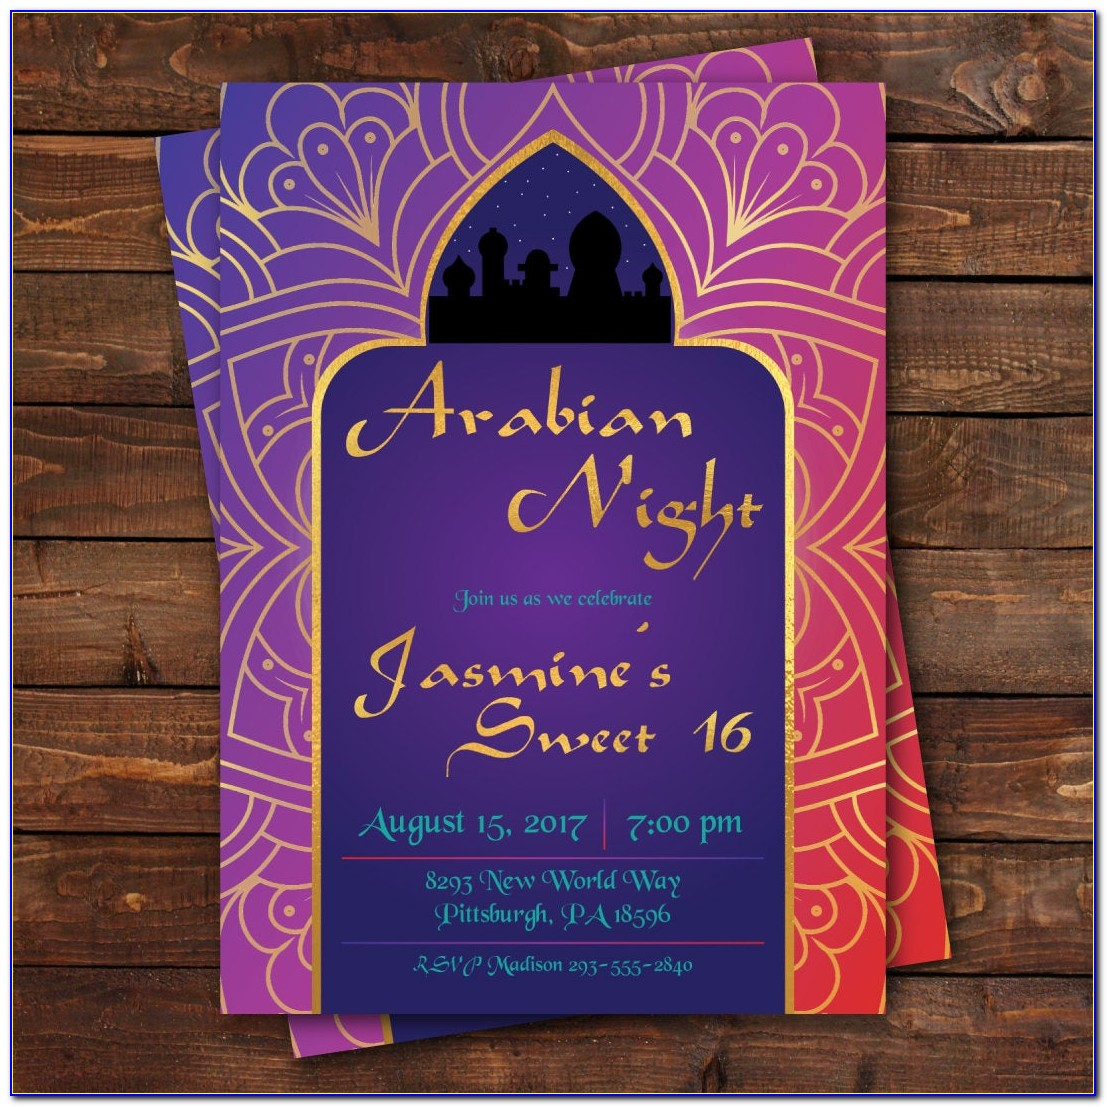 Artscroll Wedding Invitations